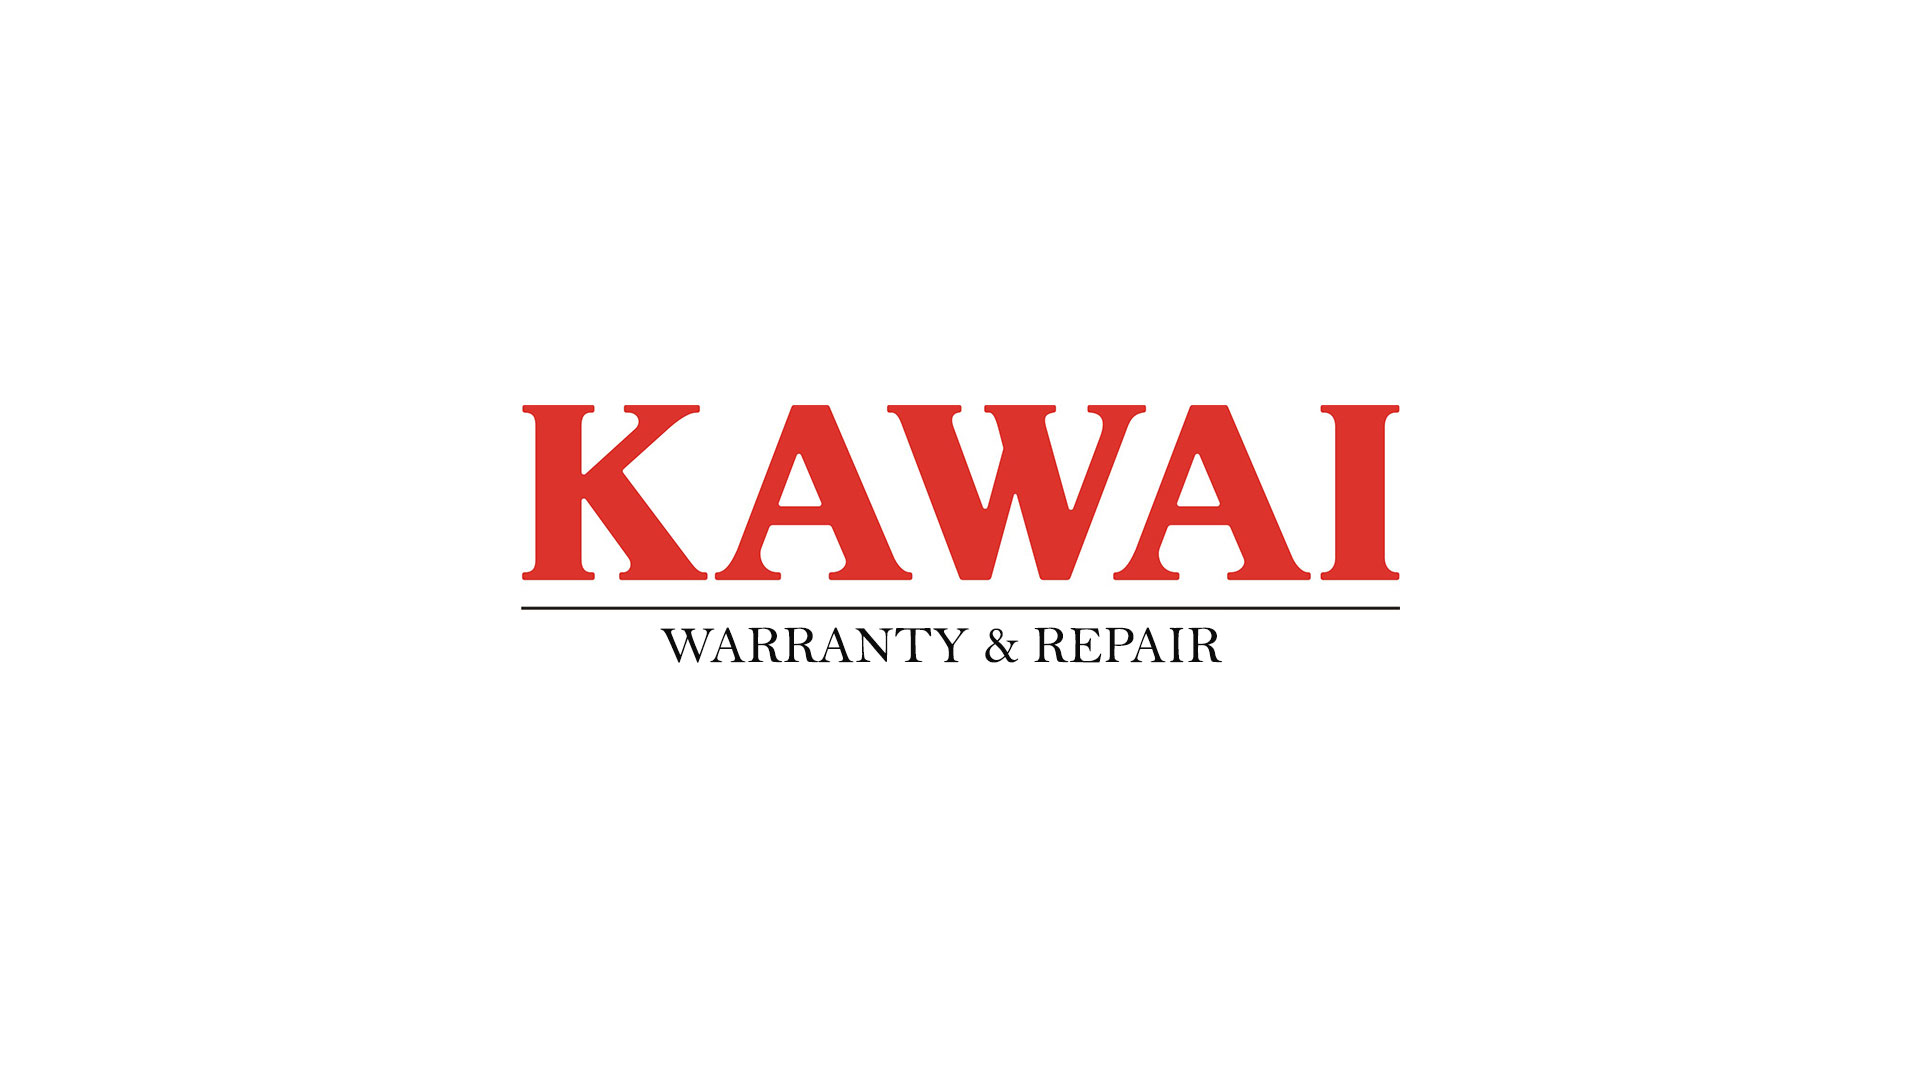 Kawai Warranty and Repair